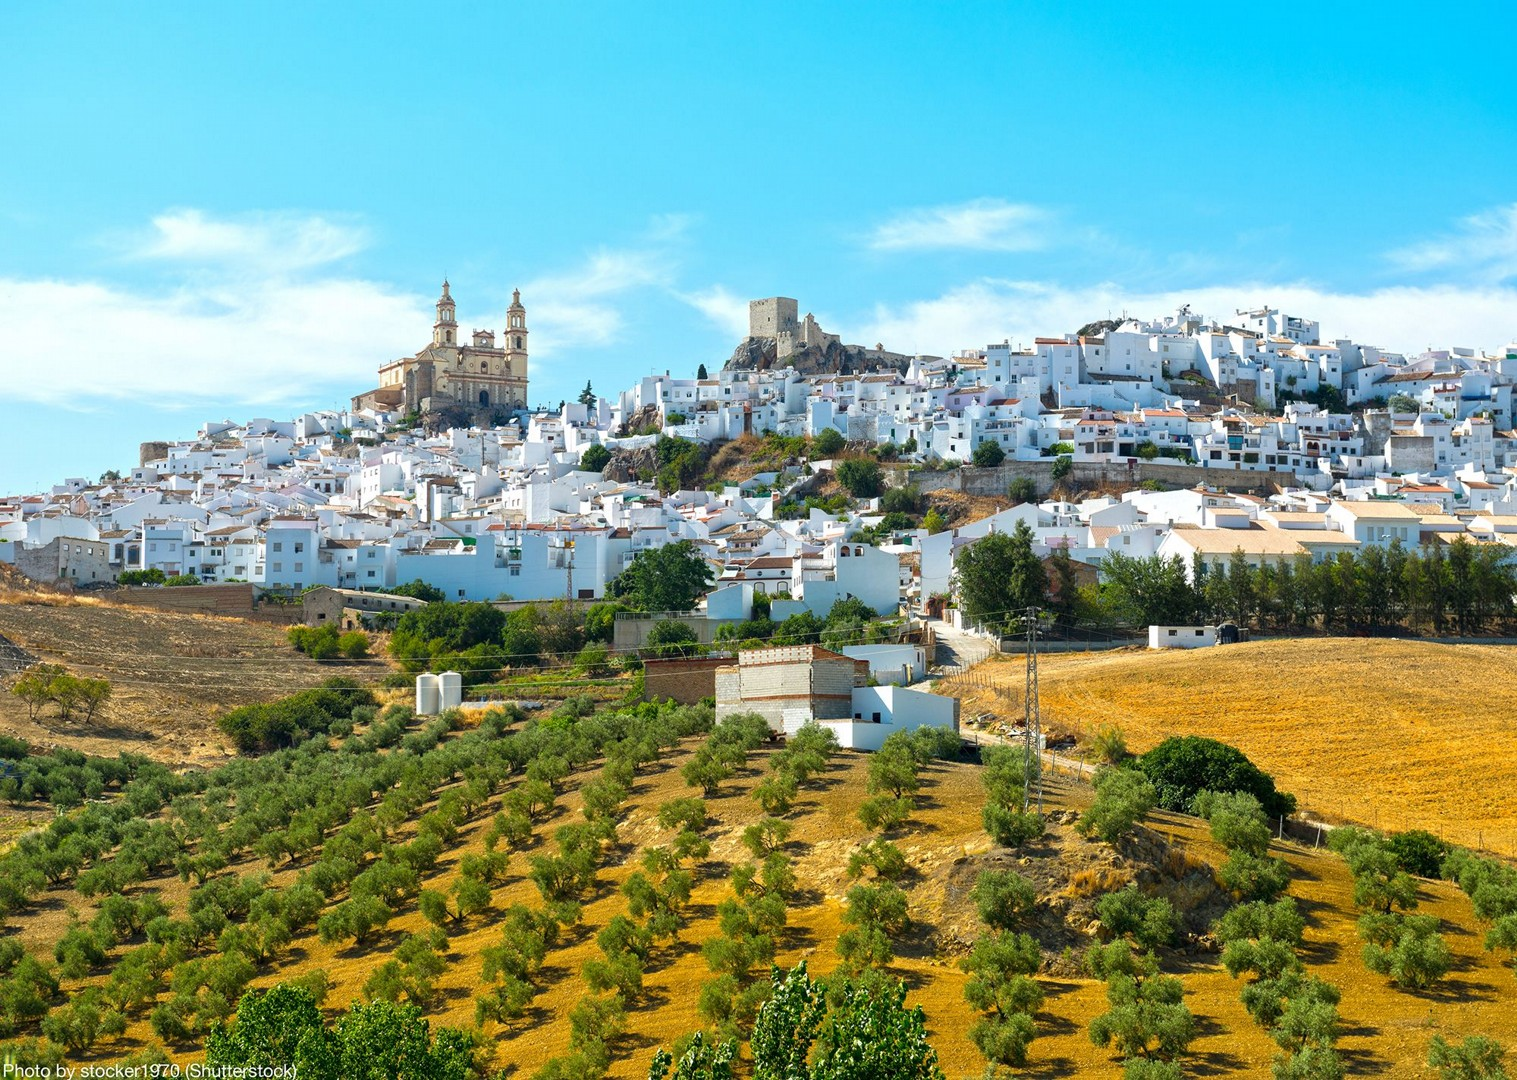 By stocker1970 shutterstock_681175240.jpg - Spain - Andalucia - White Villages to the Ocean - Self-Guided Leisure Cycling Holiday - Leisure Cycling